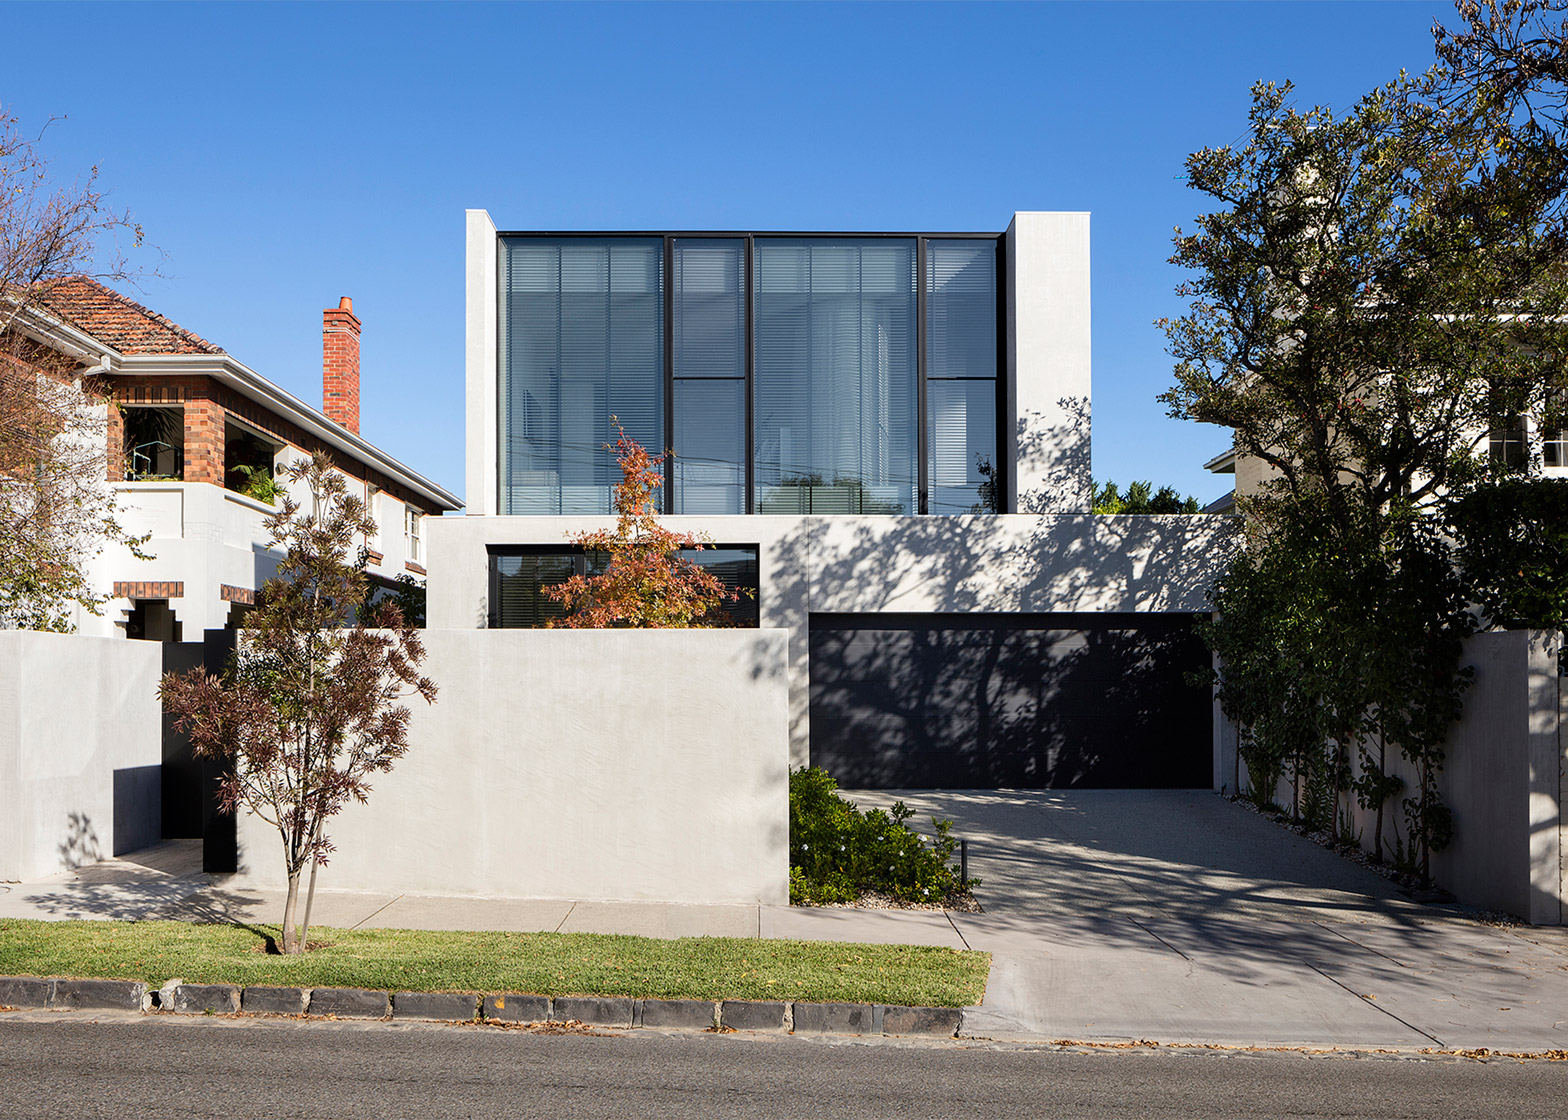 6 Of 7; LSD Residence By Davidov Partners In Toorak, Melbourne